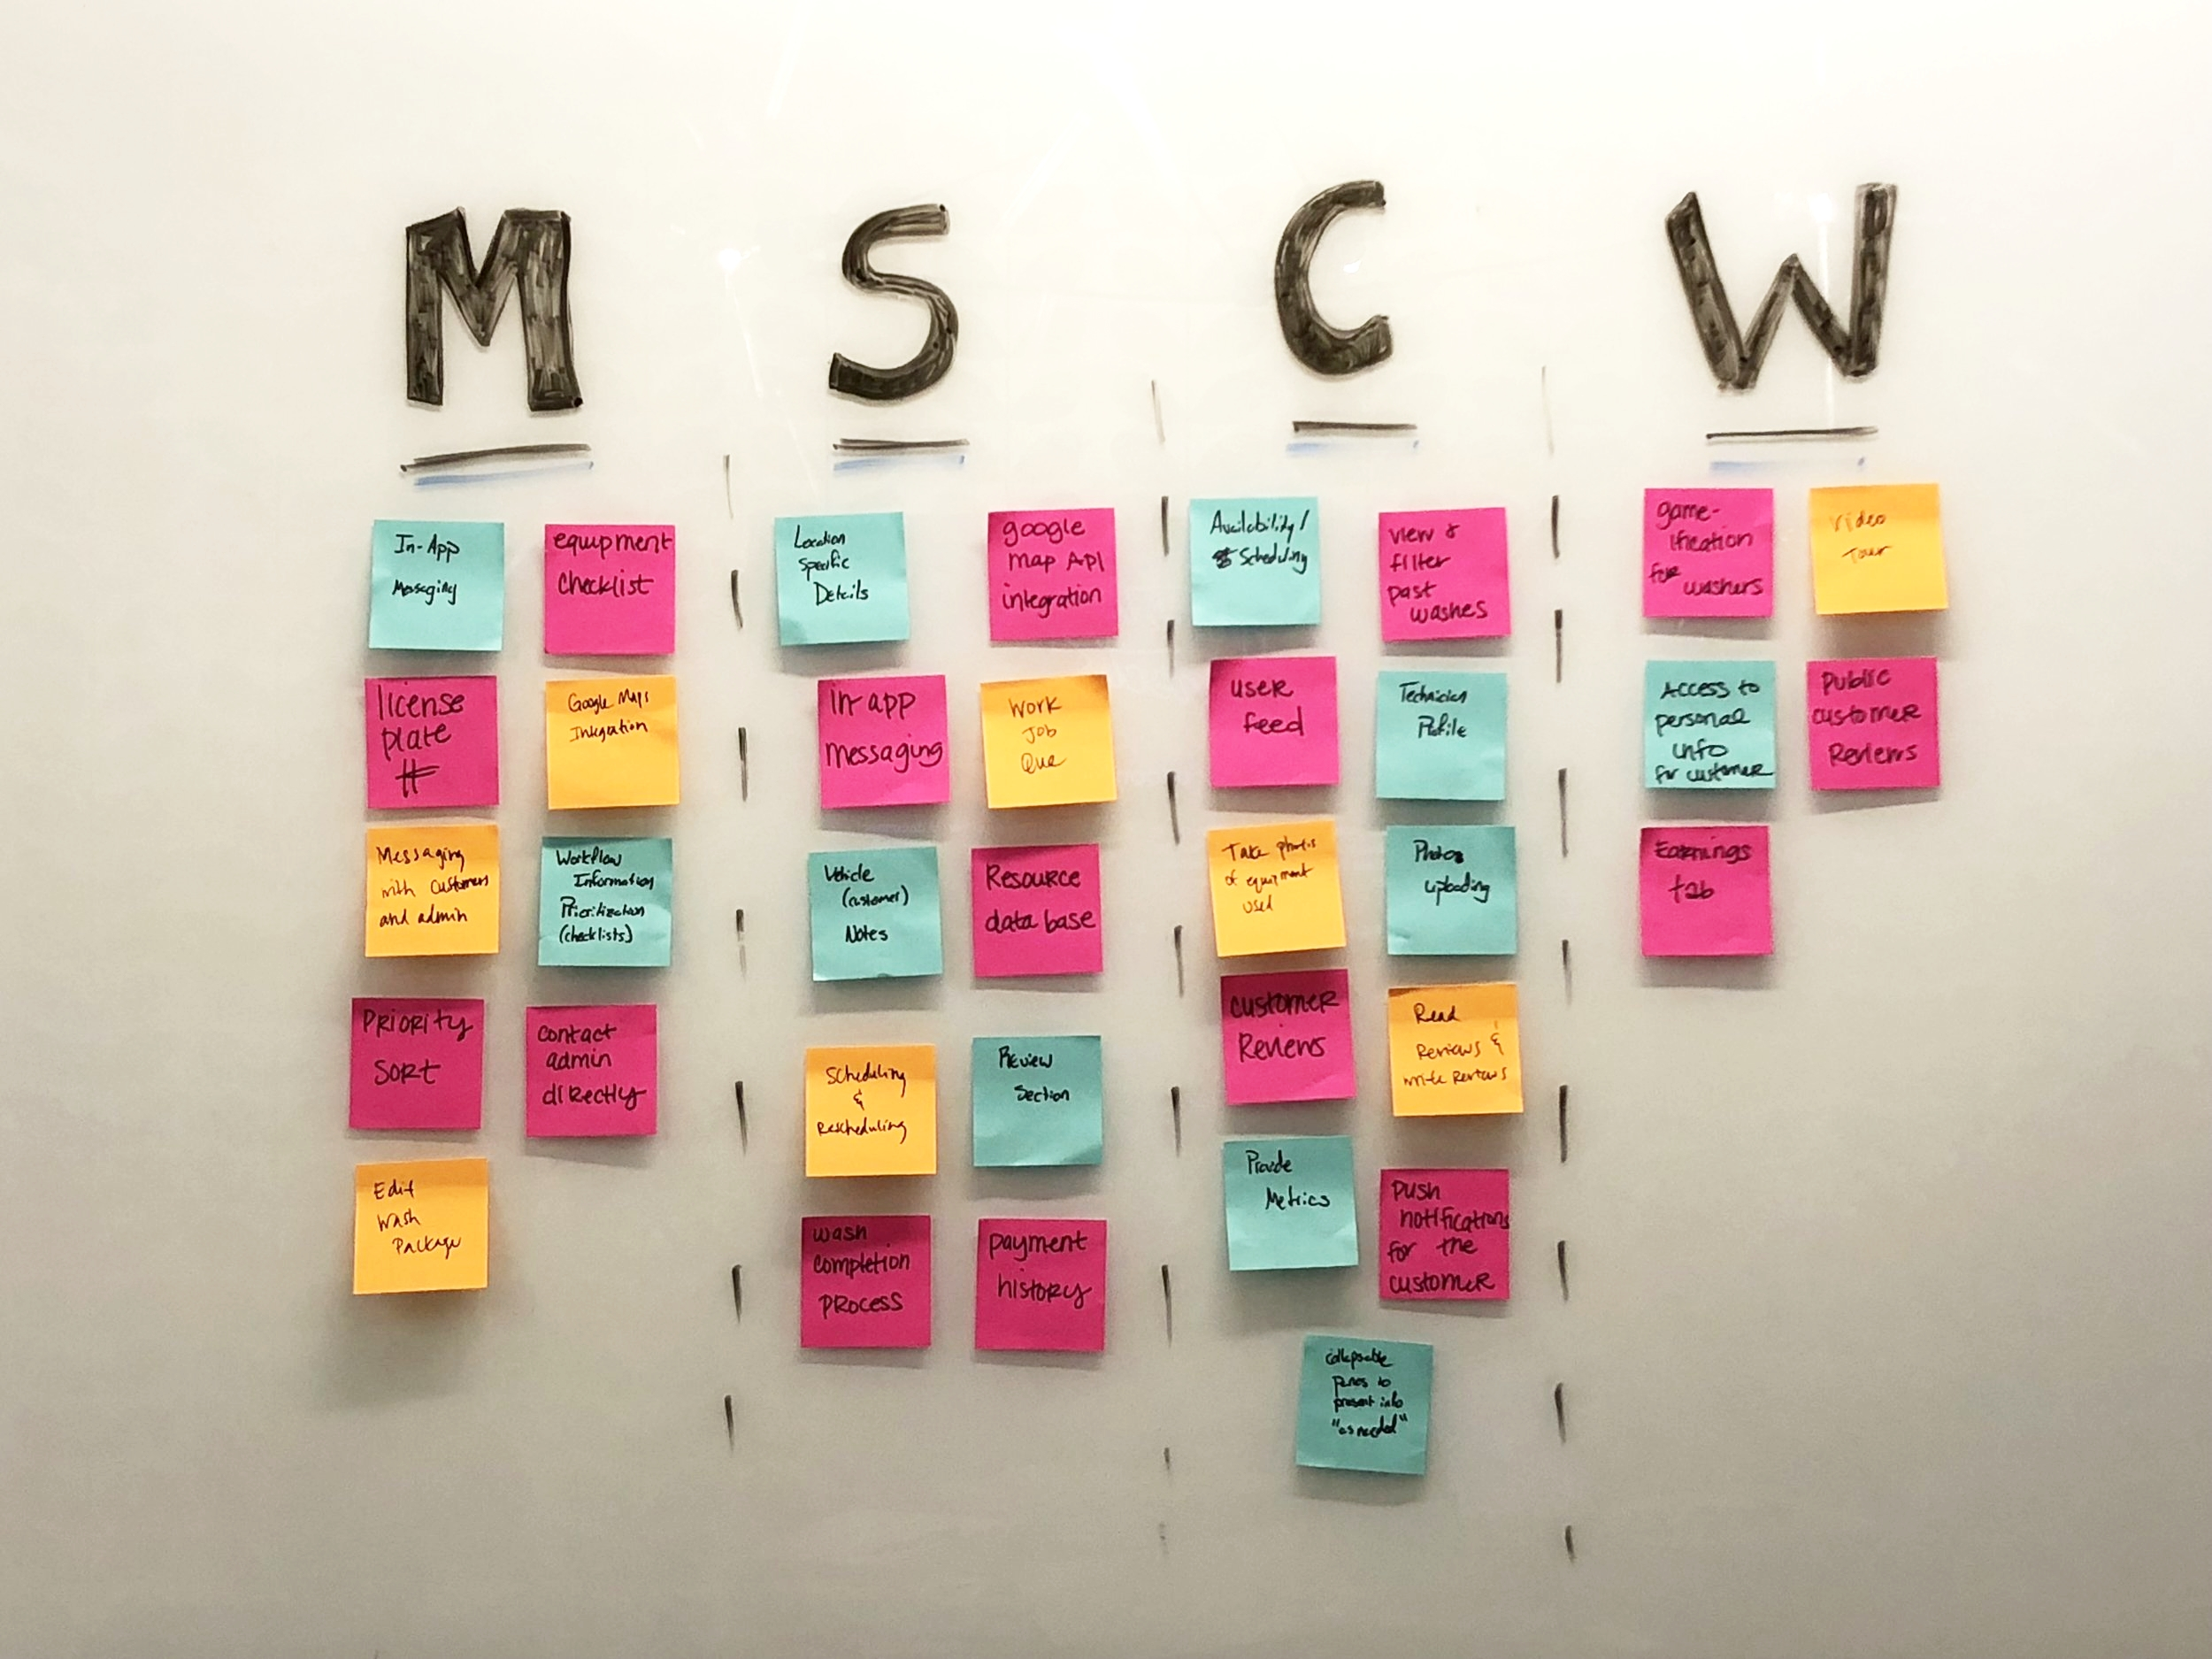 We used the MoSCoW method to decide on the app's features.